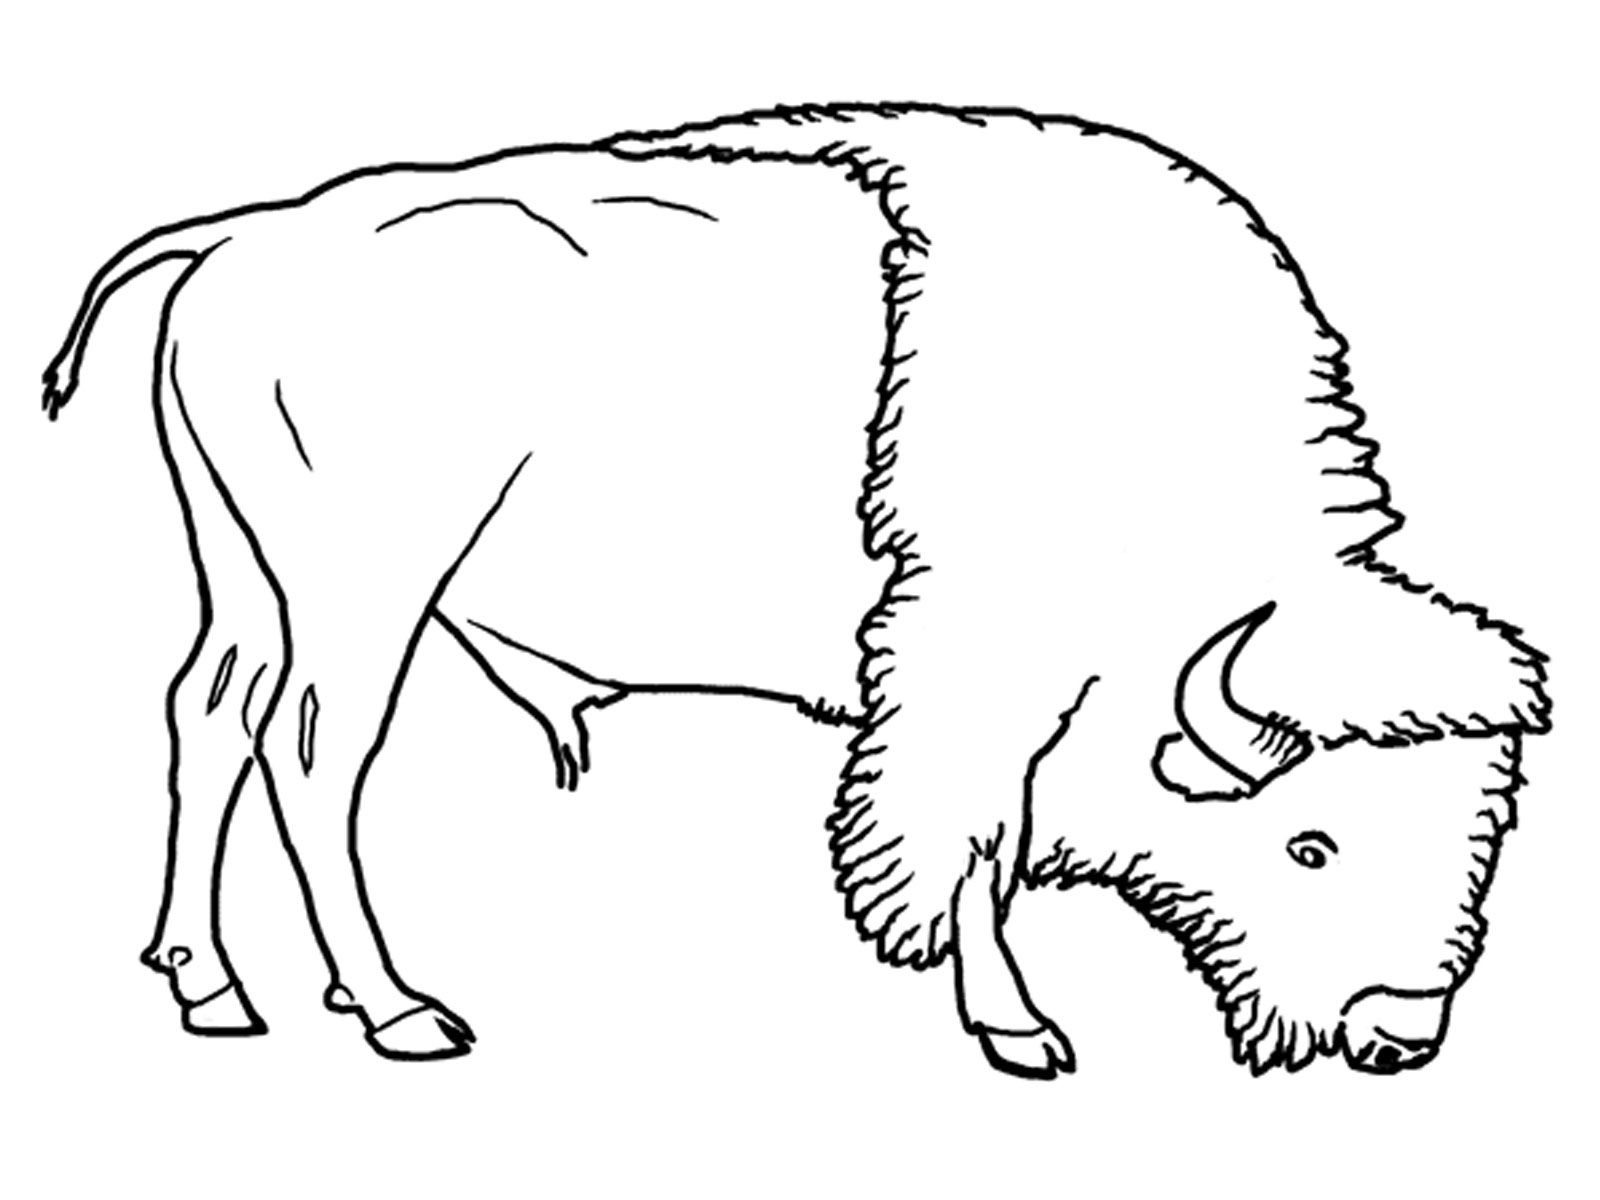 1600x1200 The Best Grassland Coloring Pages For Animal Styles And Sheet